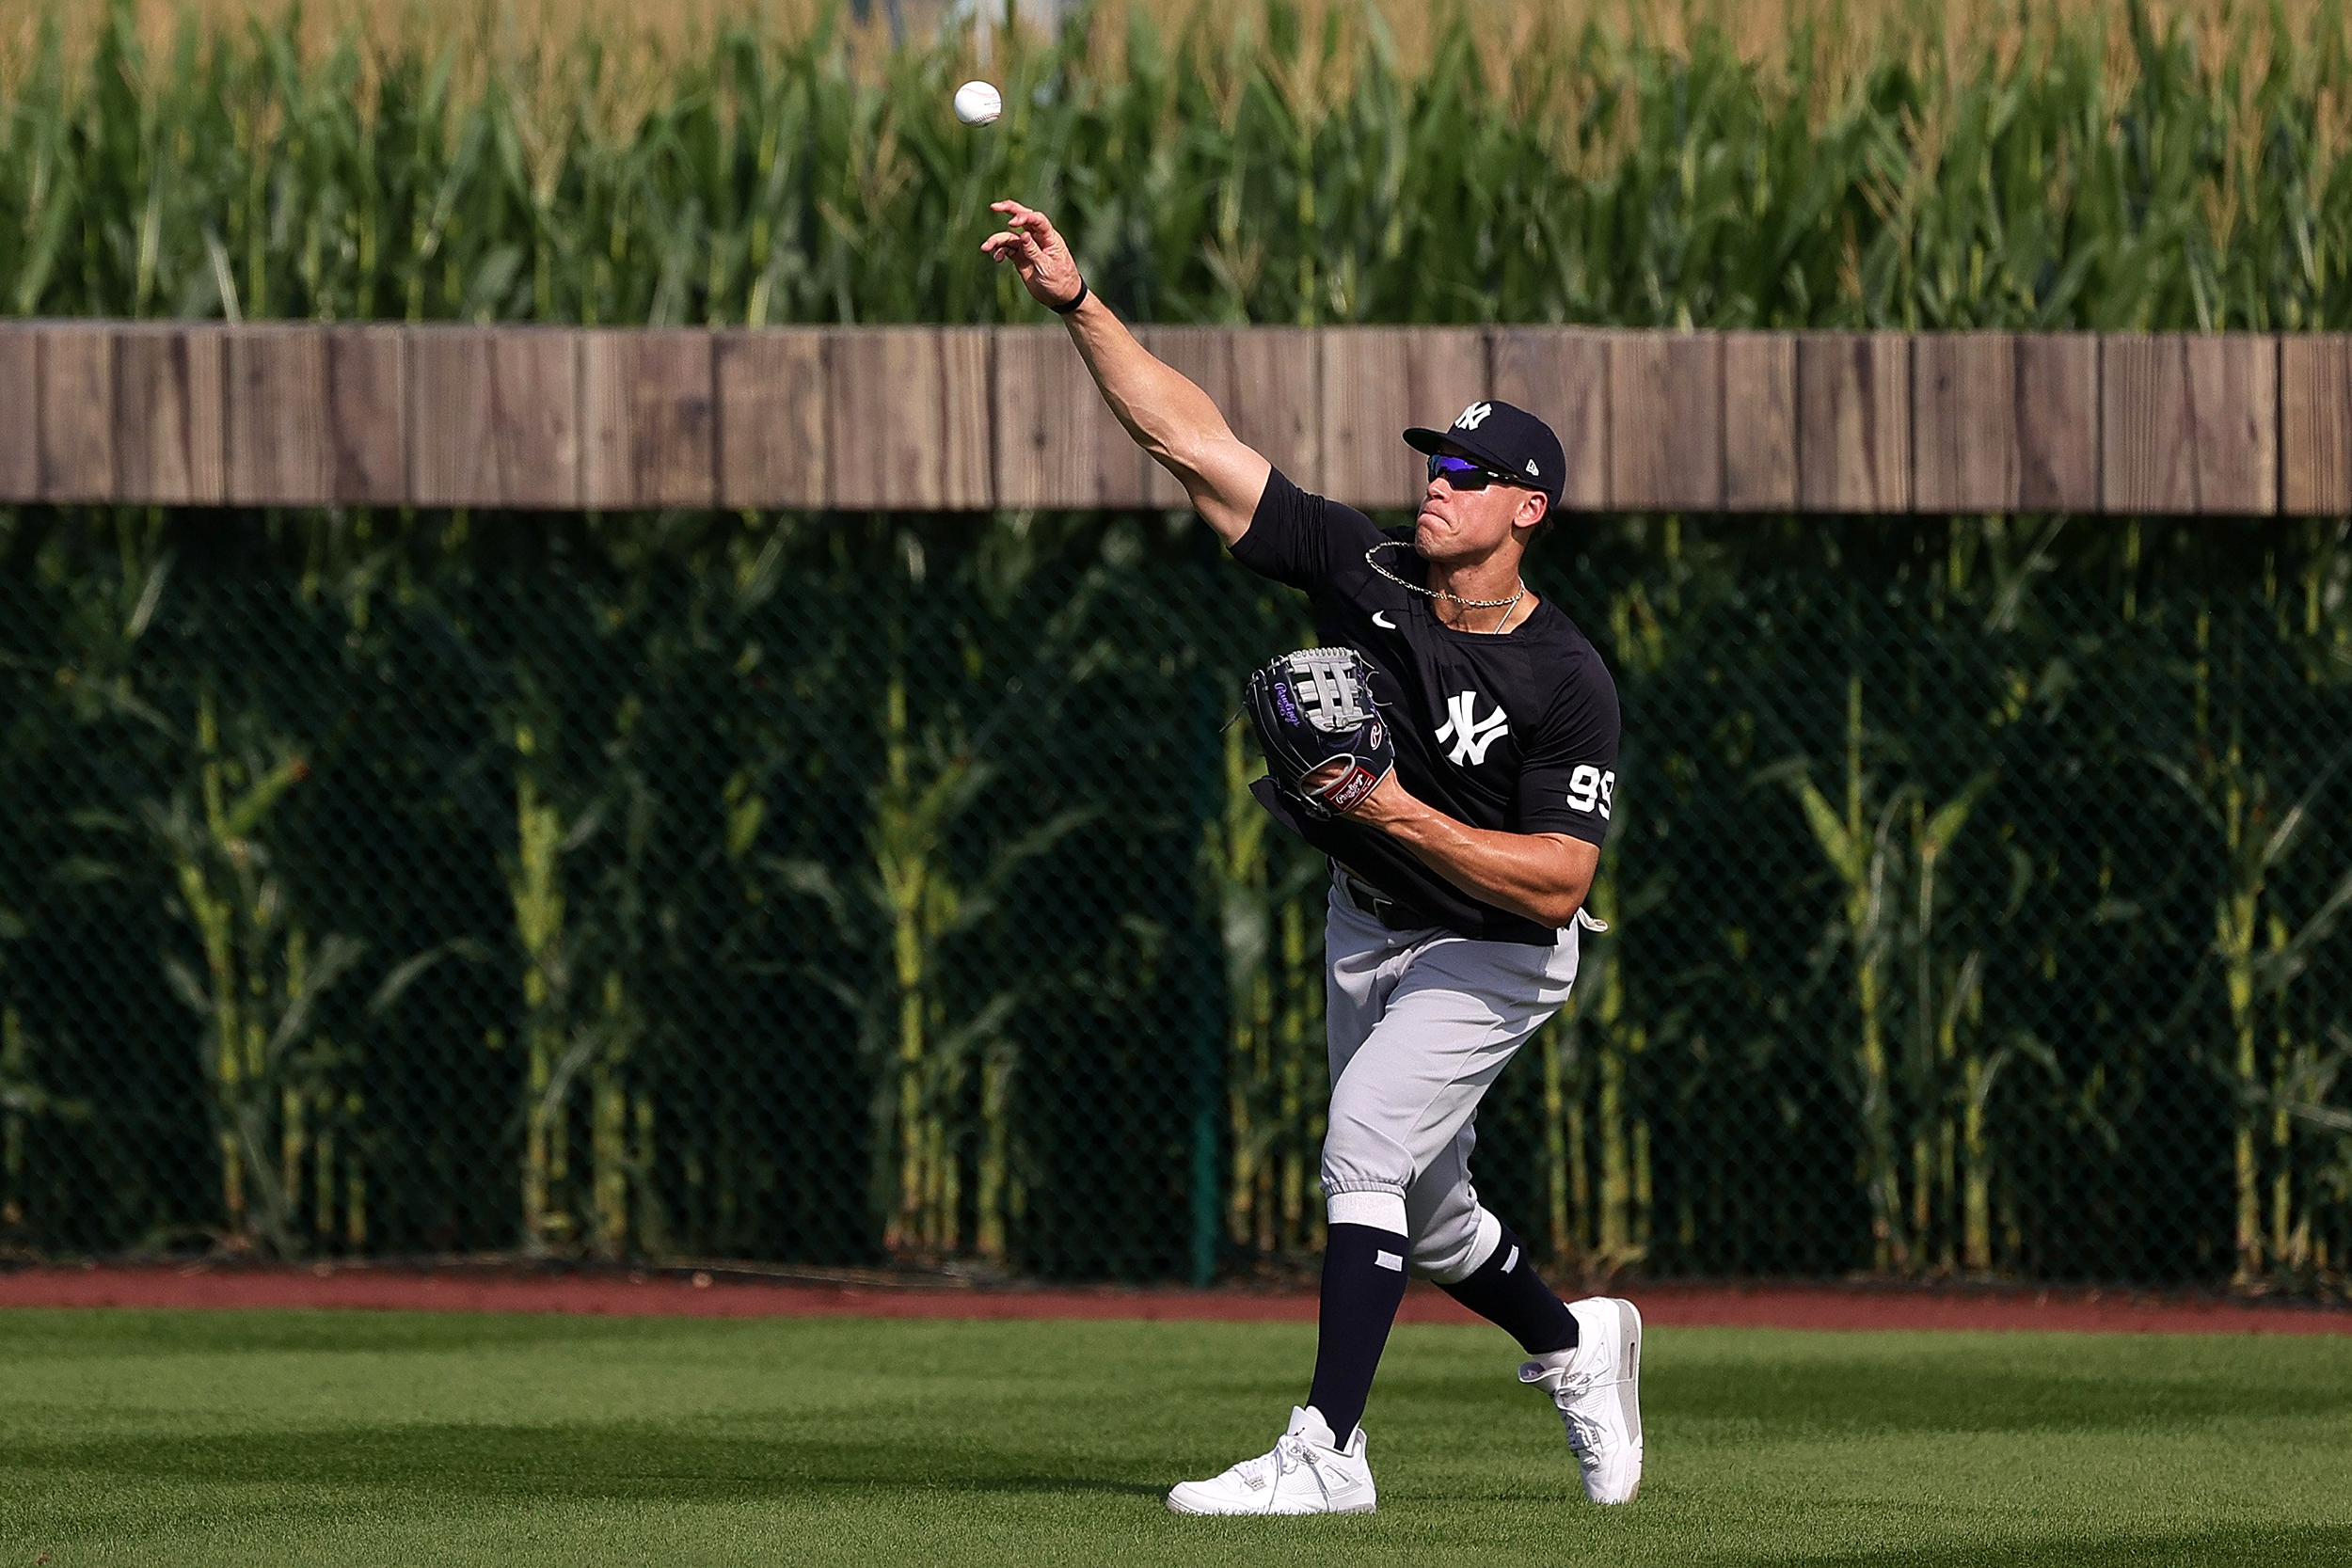 'Field of Dreams' comes alive in Iowa: They built it, and MLB came